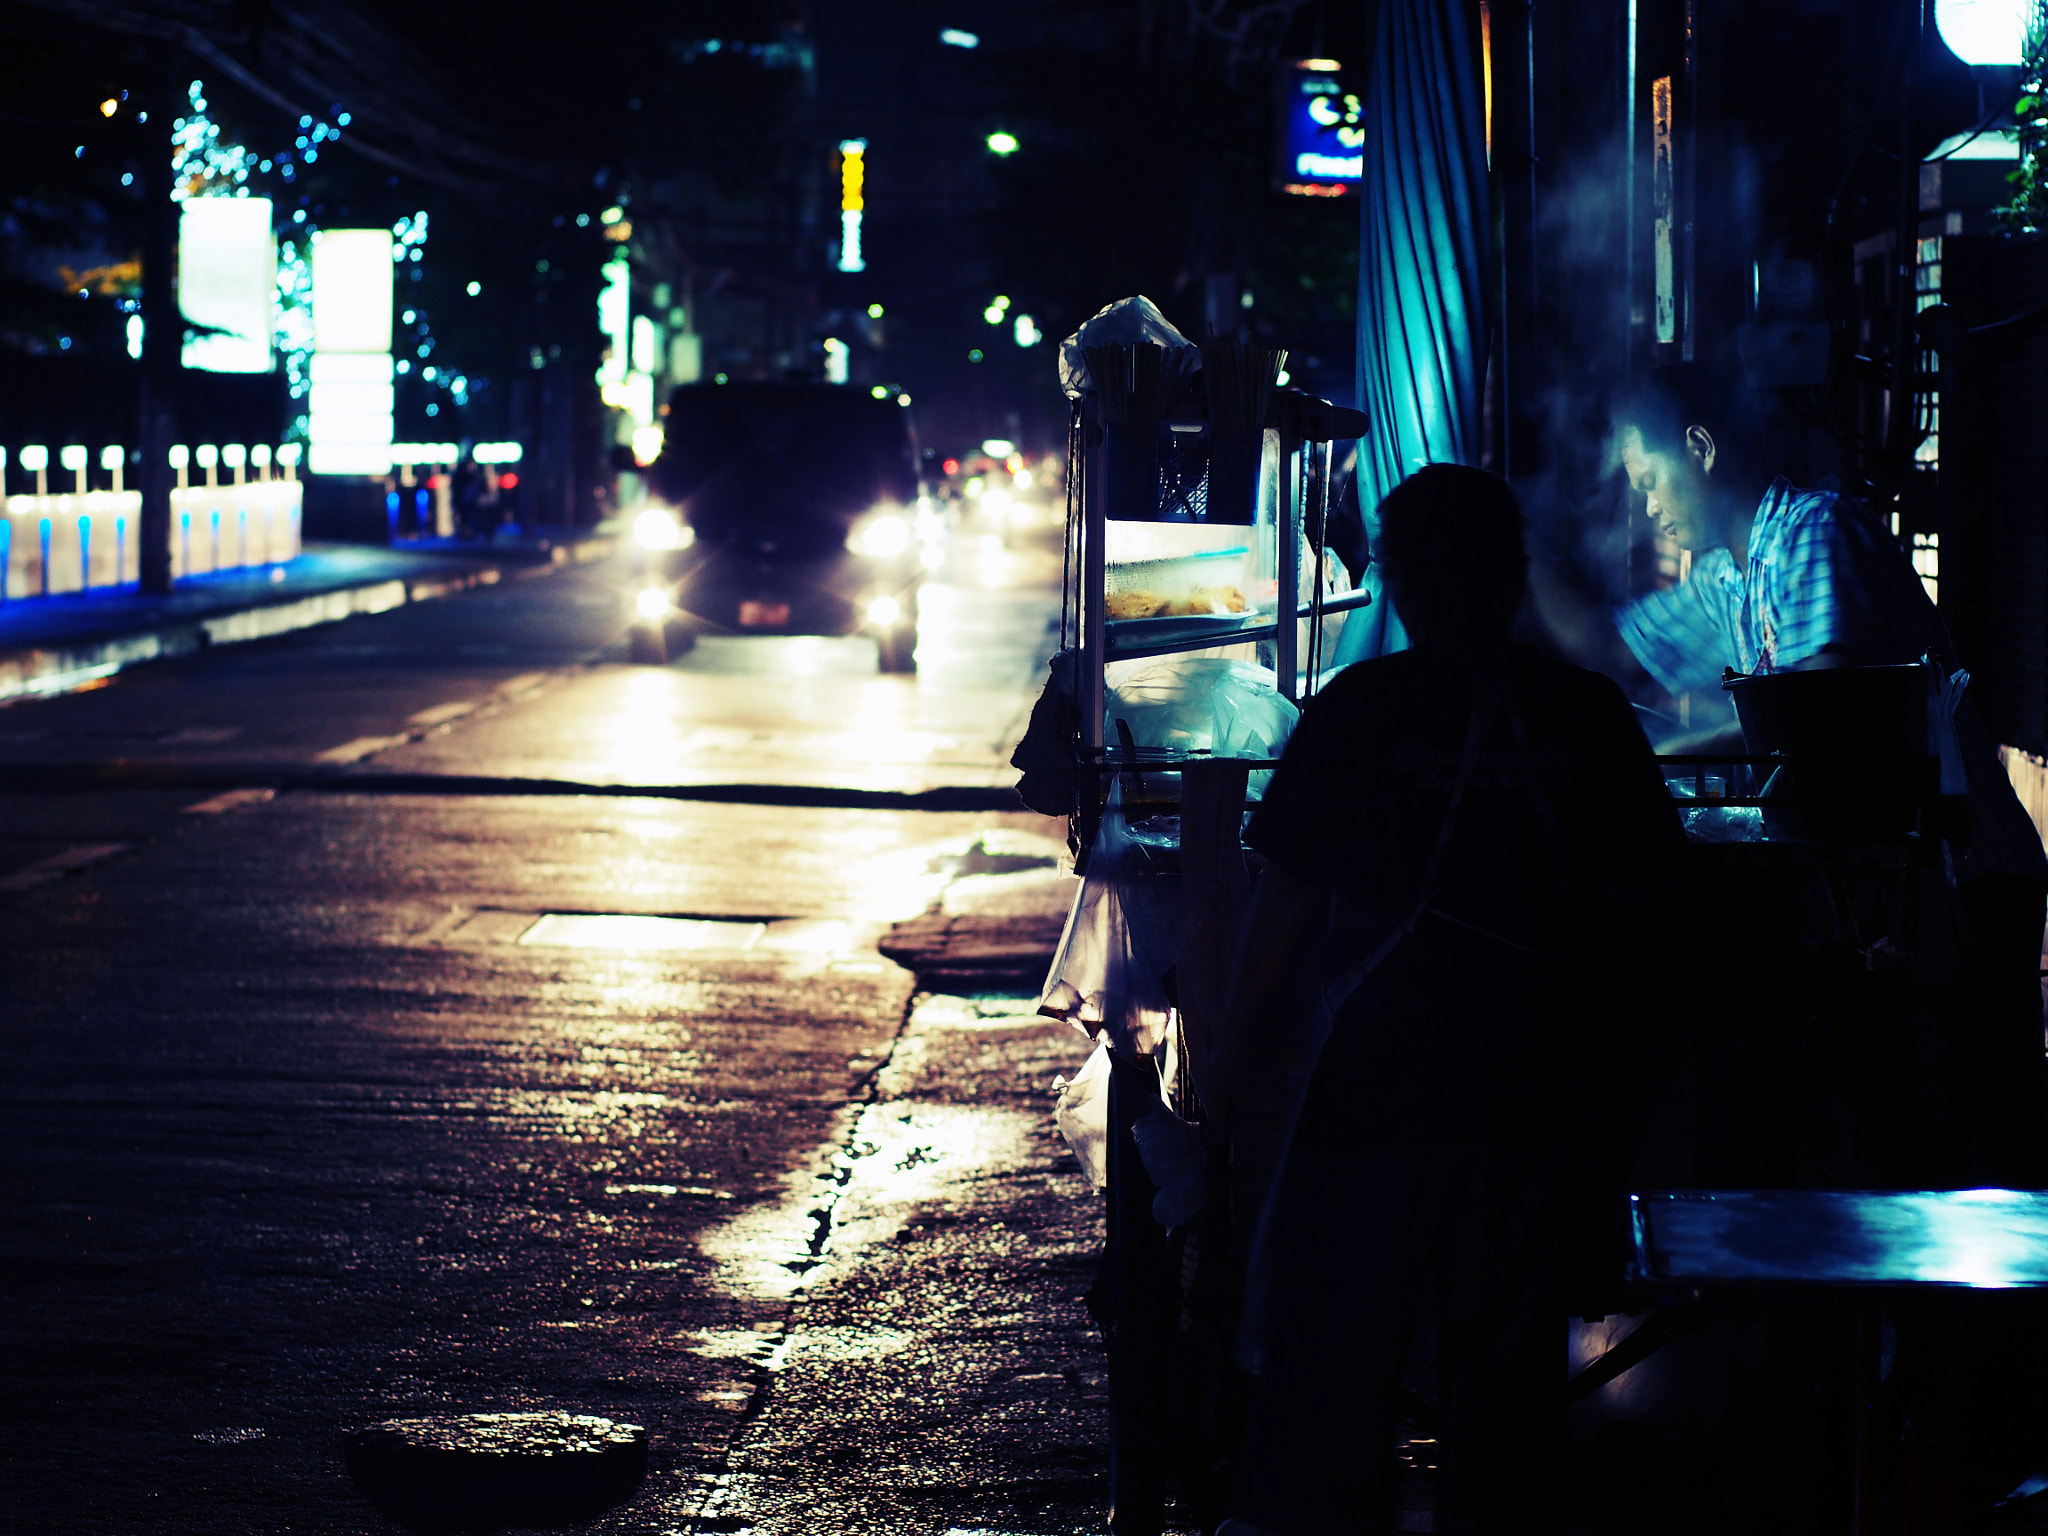 Photograph Midnight noodle by Dannie Sorum on 500px